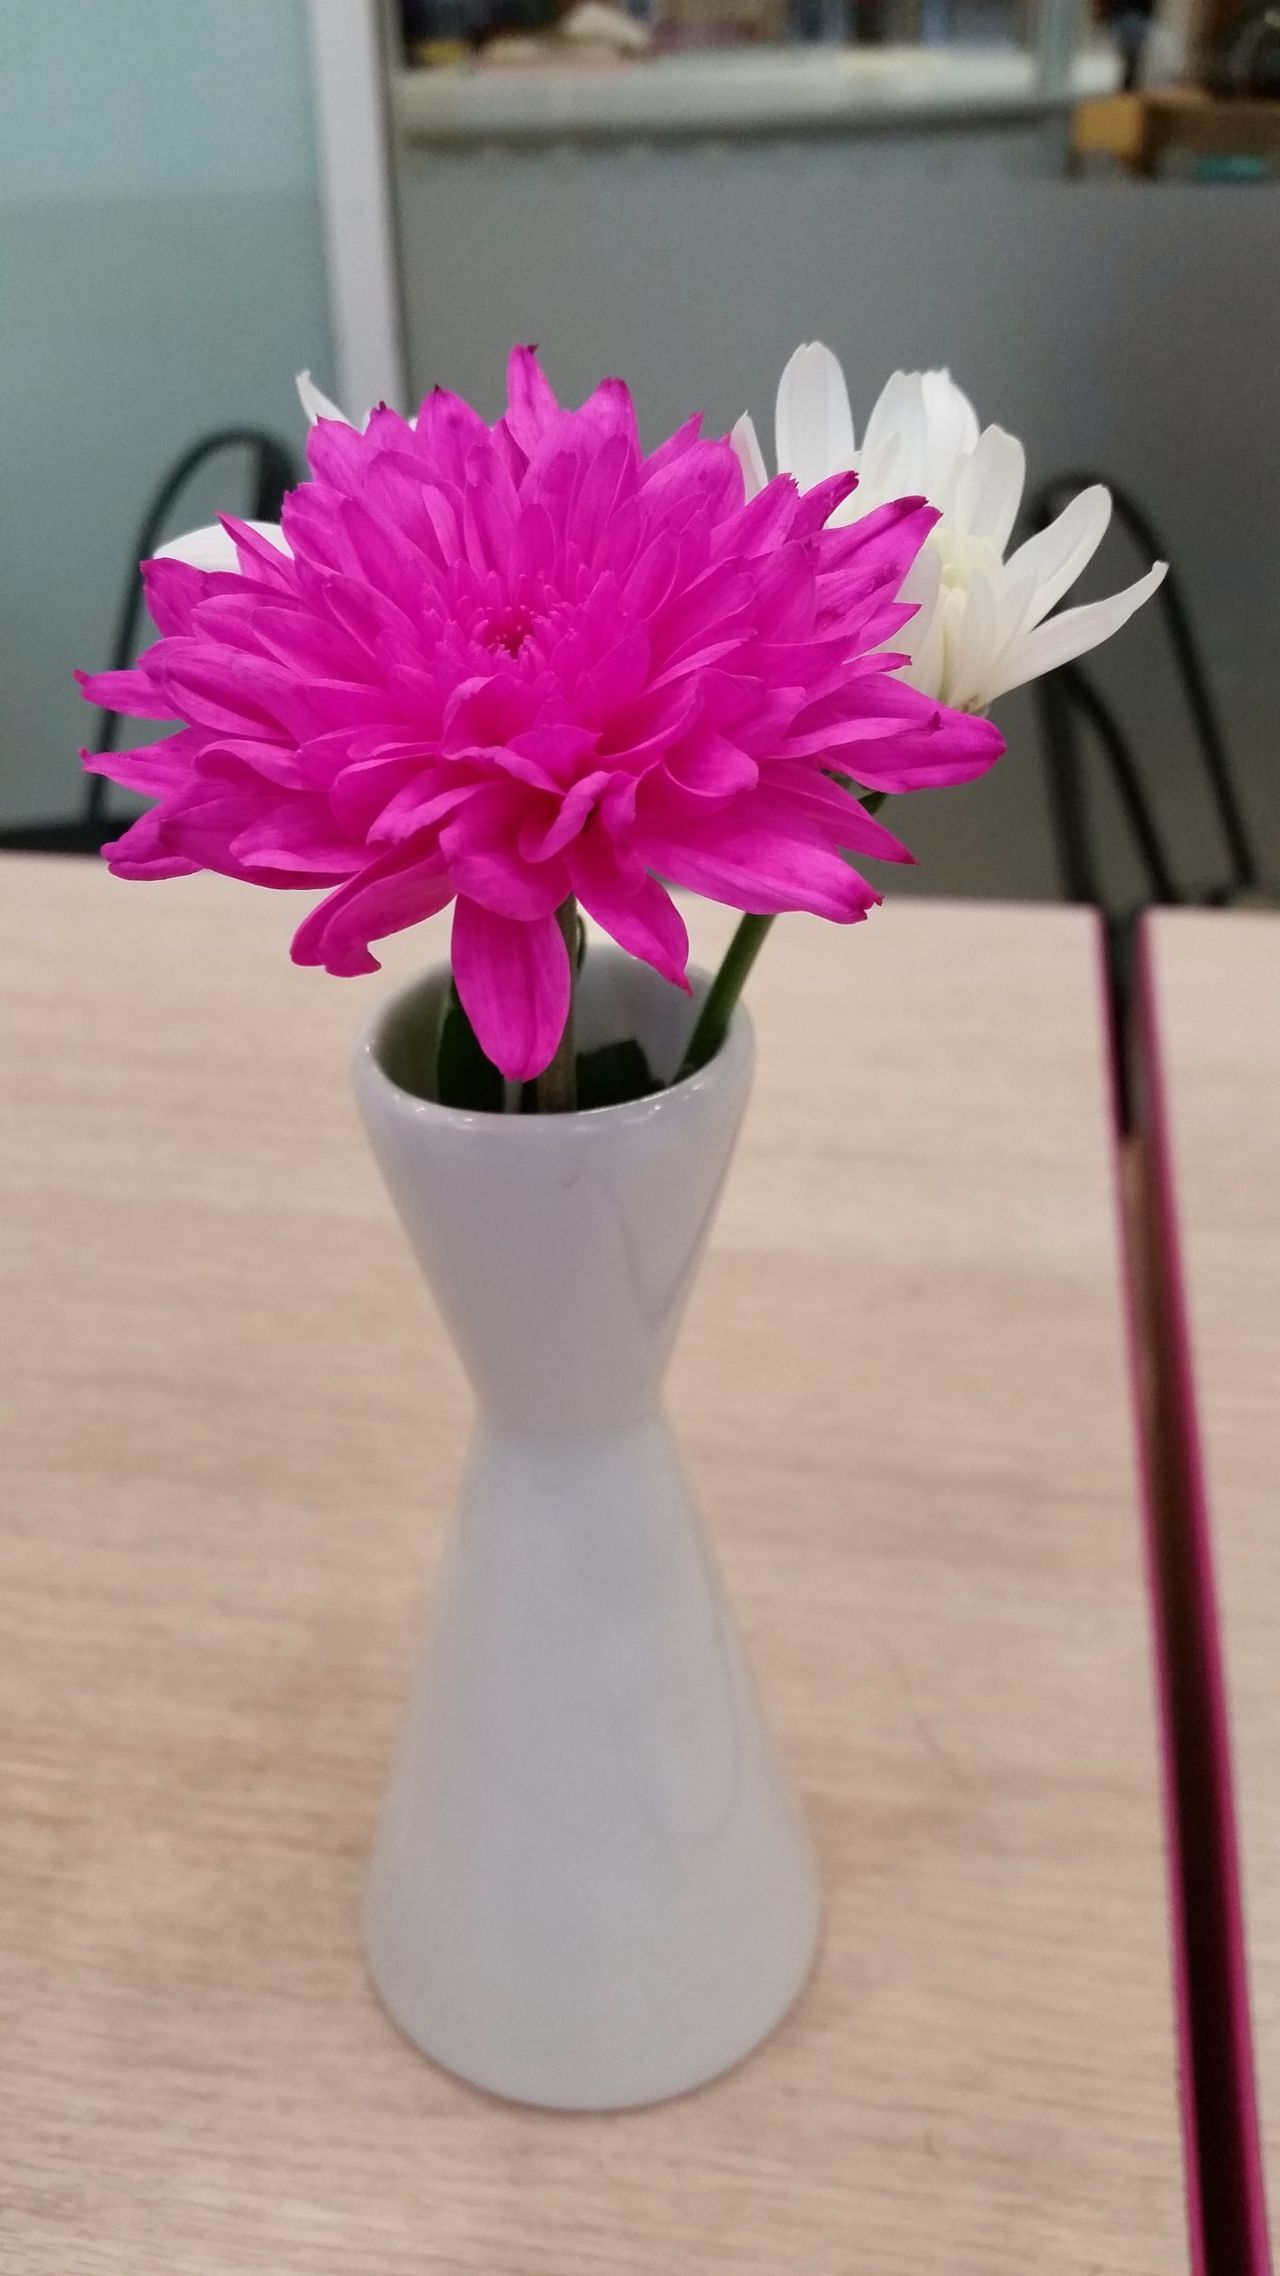 Close-up Flower No People Pink Color Table Vase